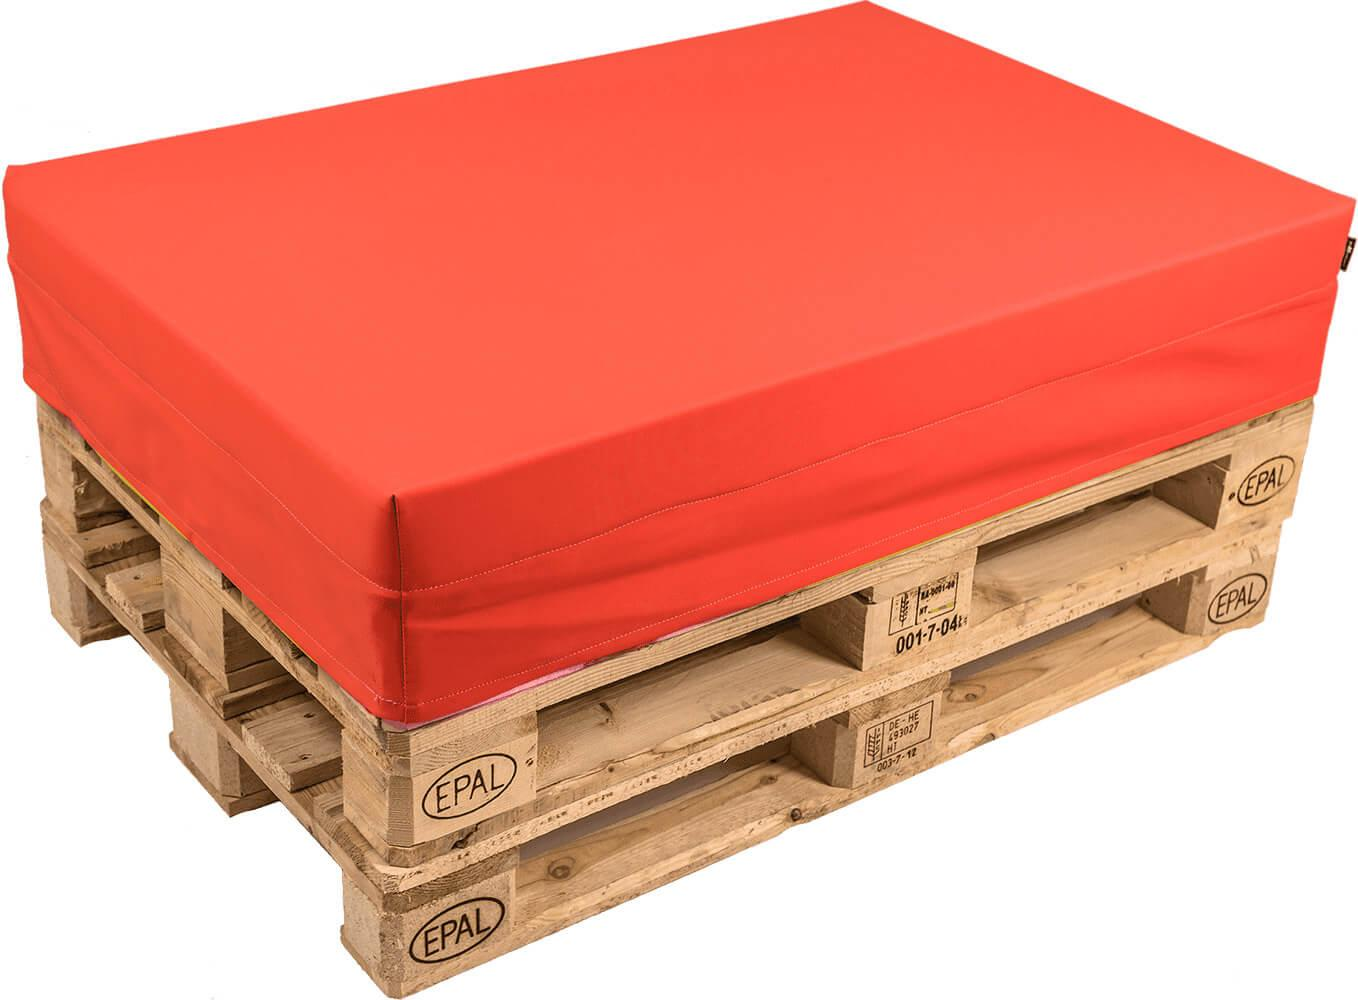 Image of Cuscino per Pallet 120x80cm in Ecopelle Pomodone Rosso